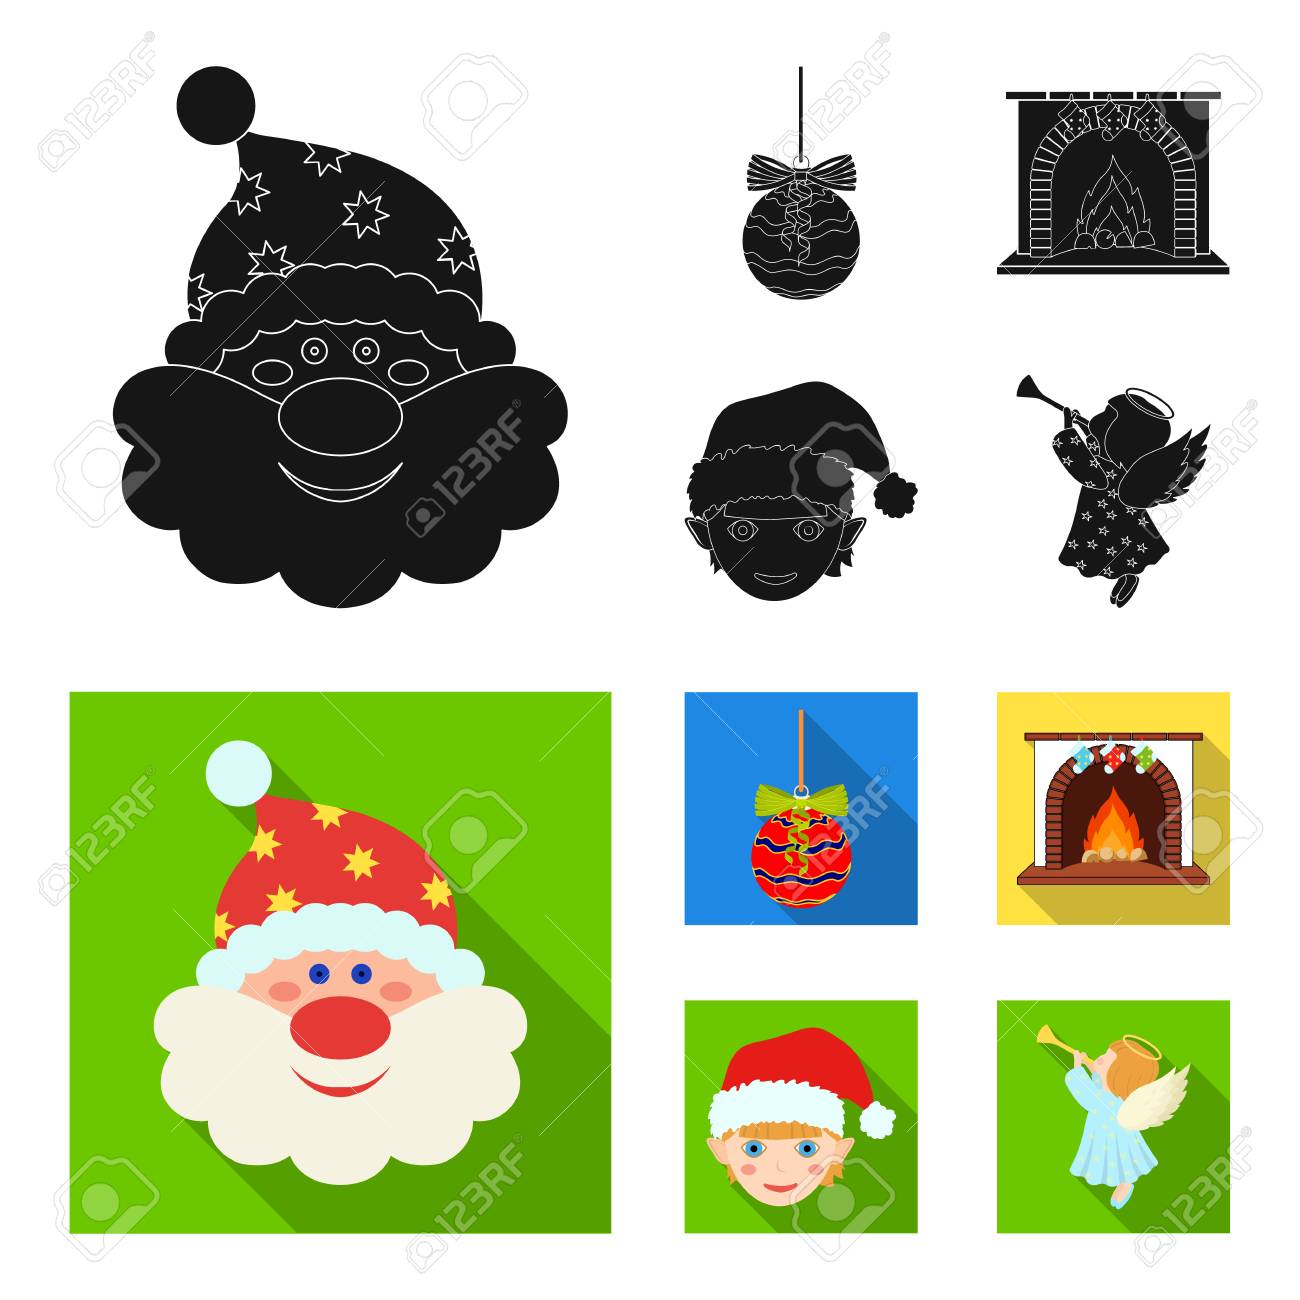 santa claus dwarf fireplace and decoration black and colored flat icons in set